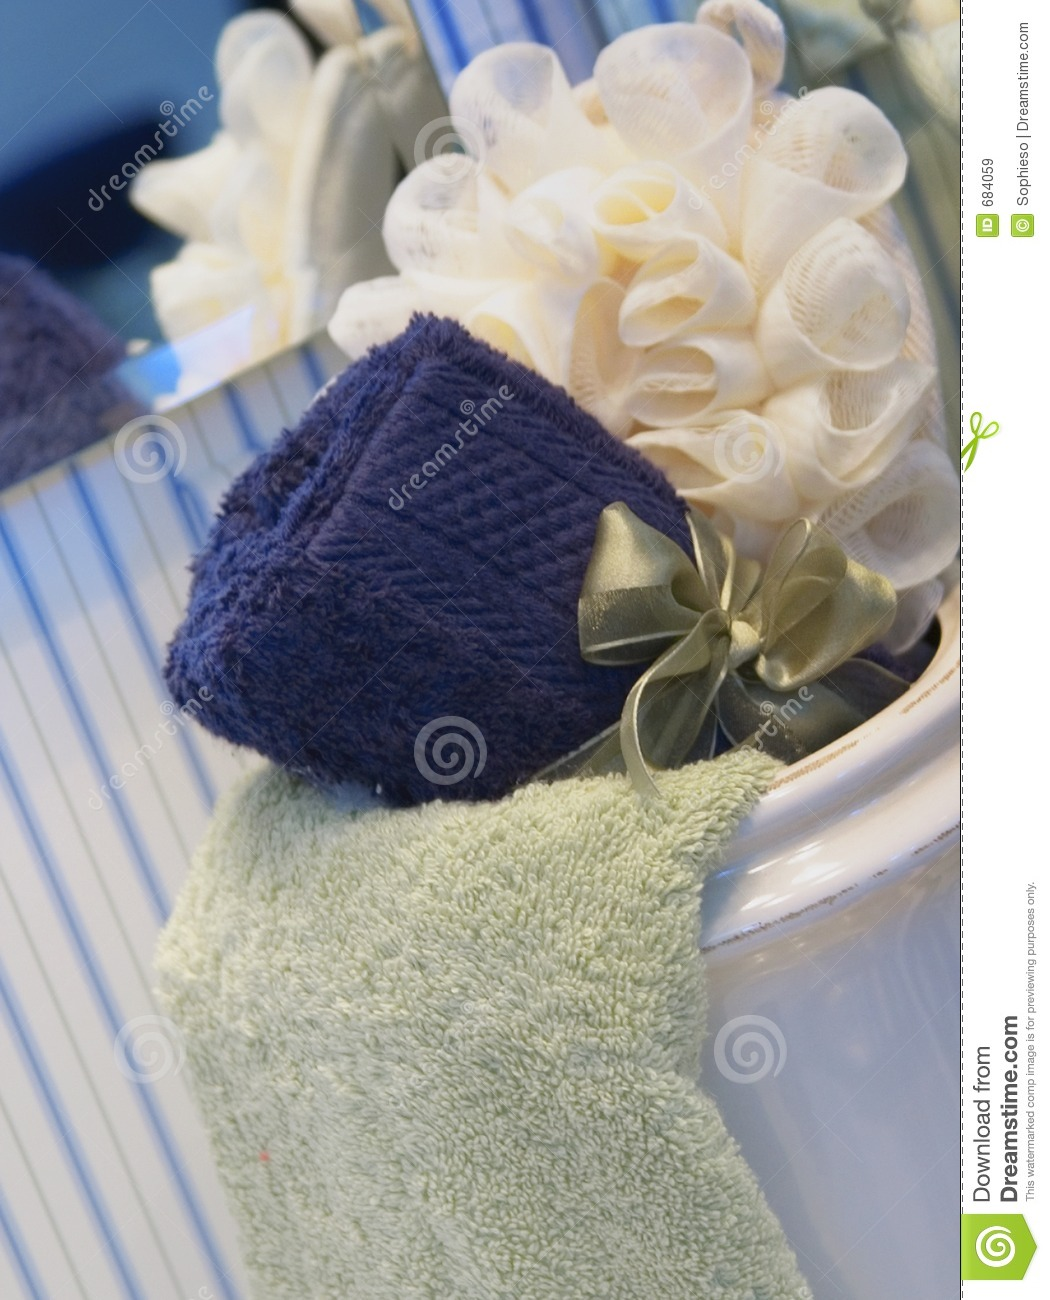 Spa Towels By Kassafina: Bath Flower And Towels Royalty Free Stock Images